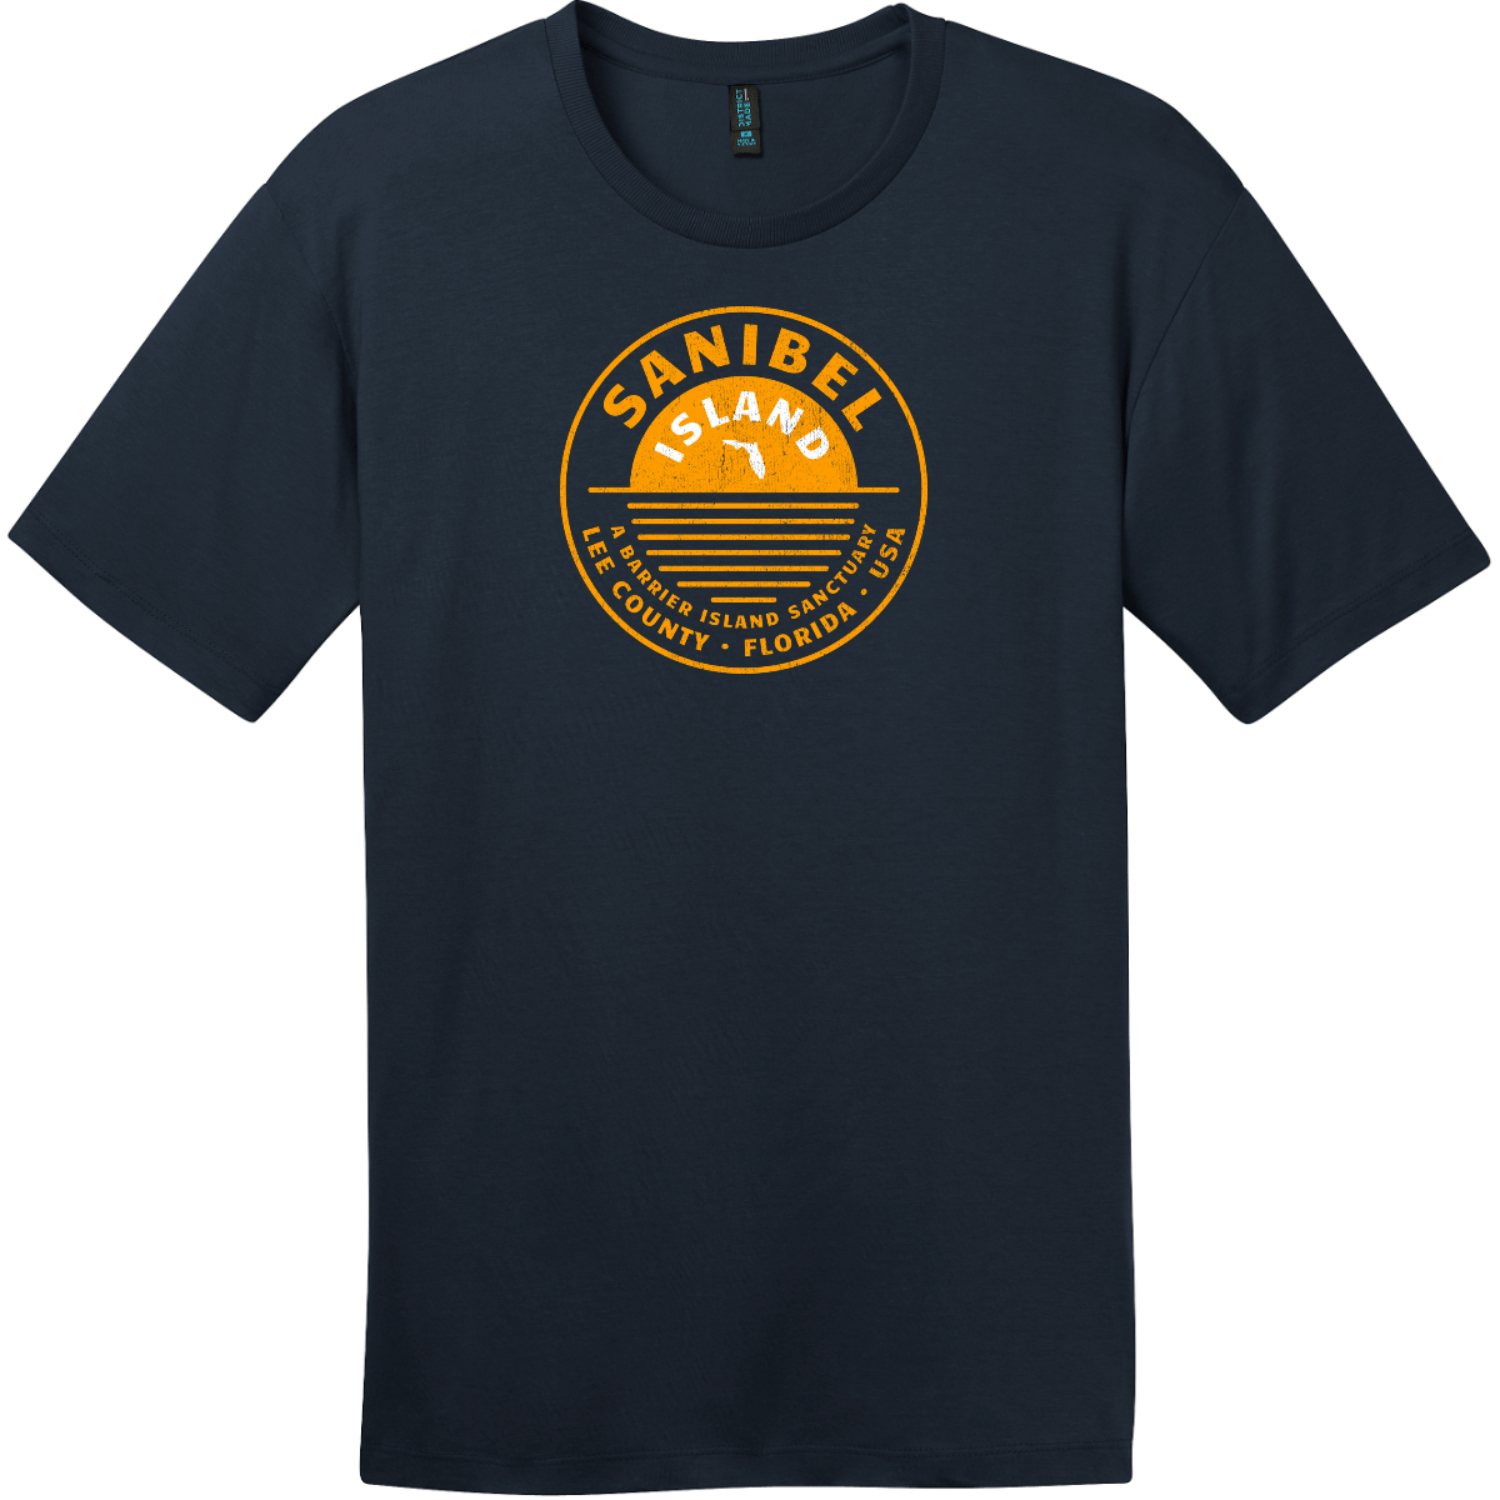 Sanibel Island T-Shirt New Navy District Perfect Weight Tee DT104